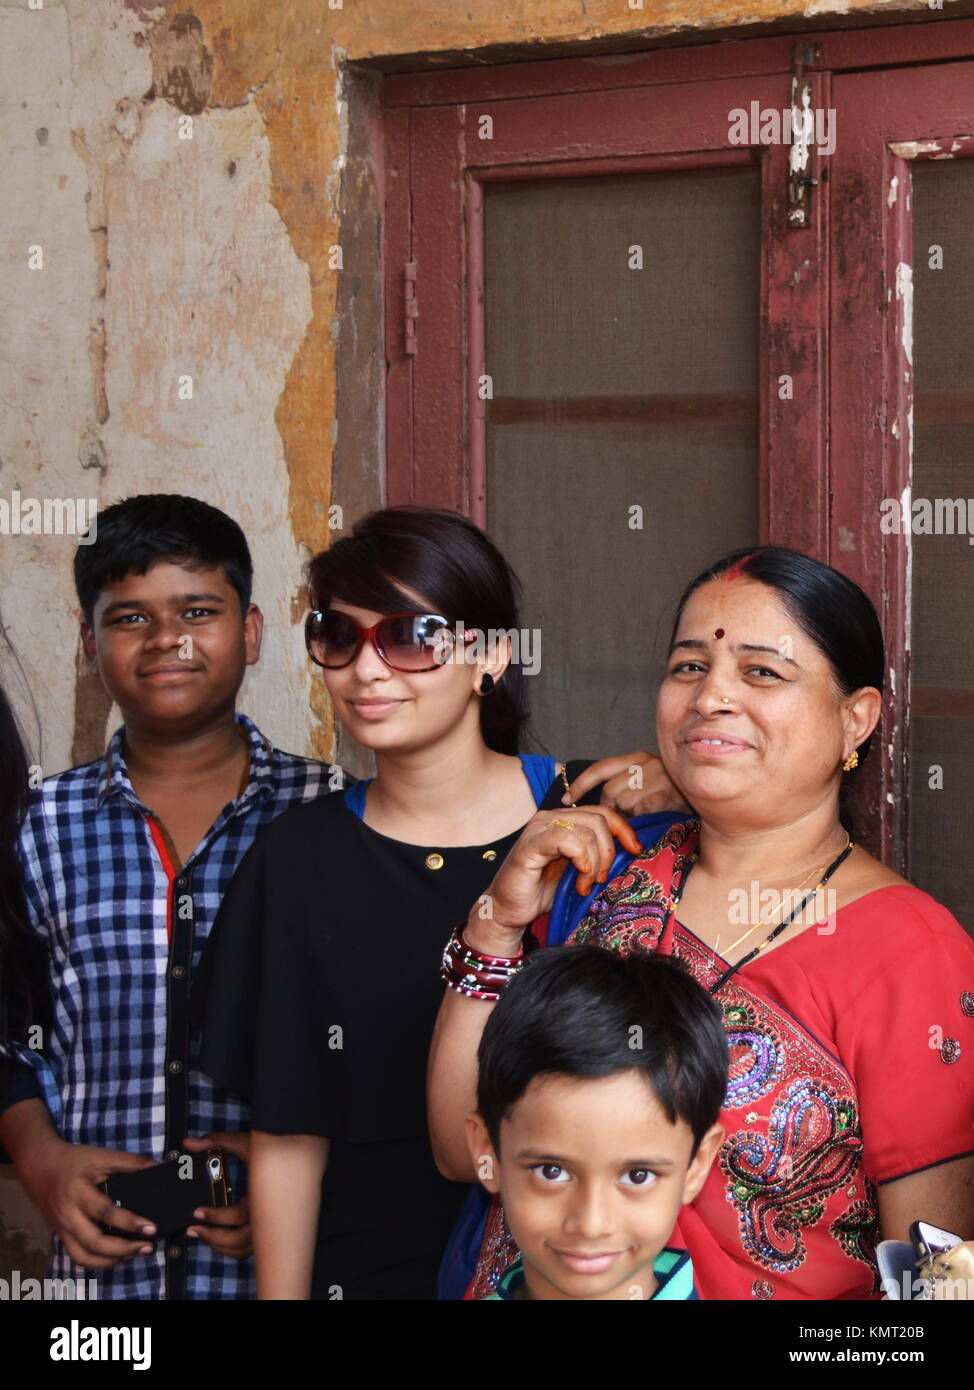 Happy smiling family enjoying their day together, taken at Red Fort in New Delhi India. - Stock Image